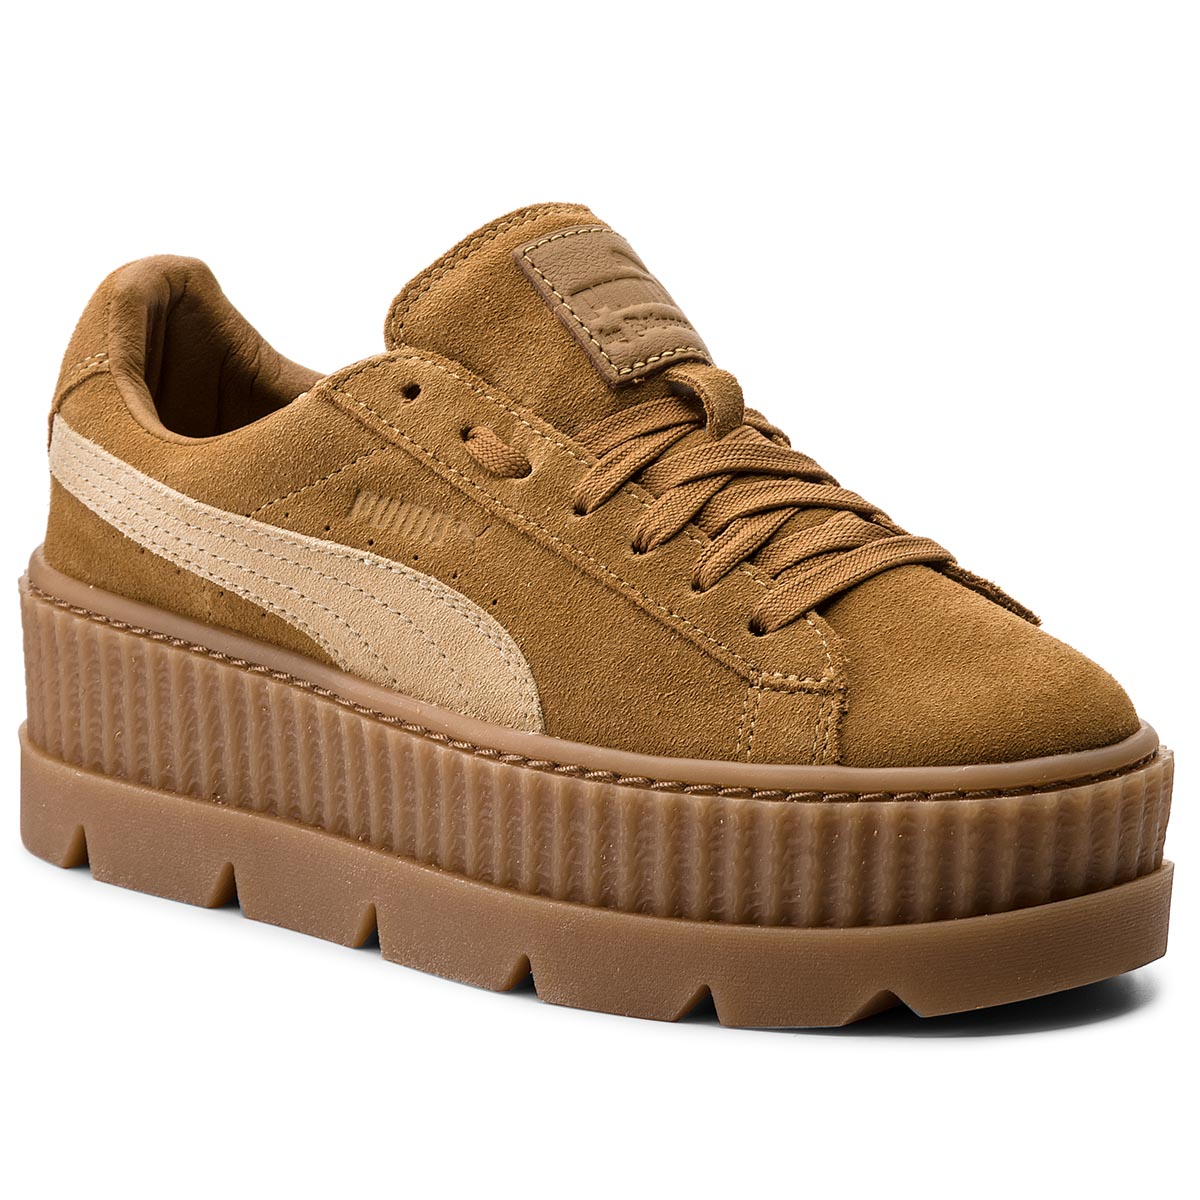 Sneakersy PUMA - Cleated CreeperSuede 366268 02 Golden Brown/Lark